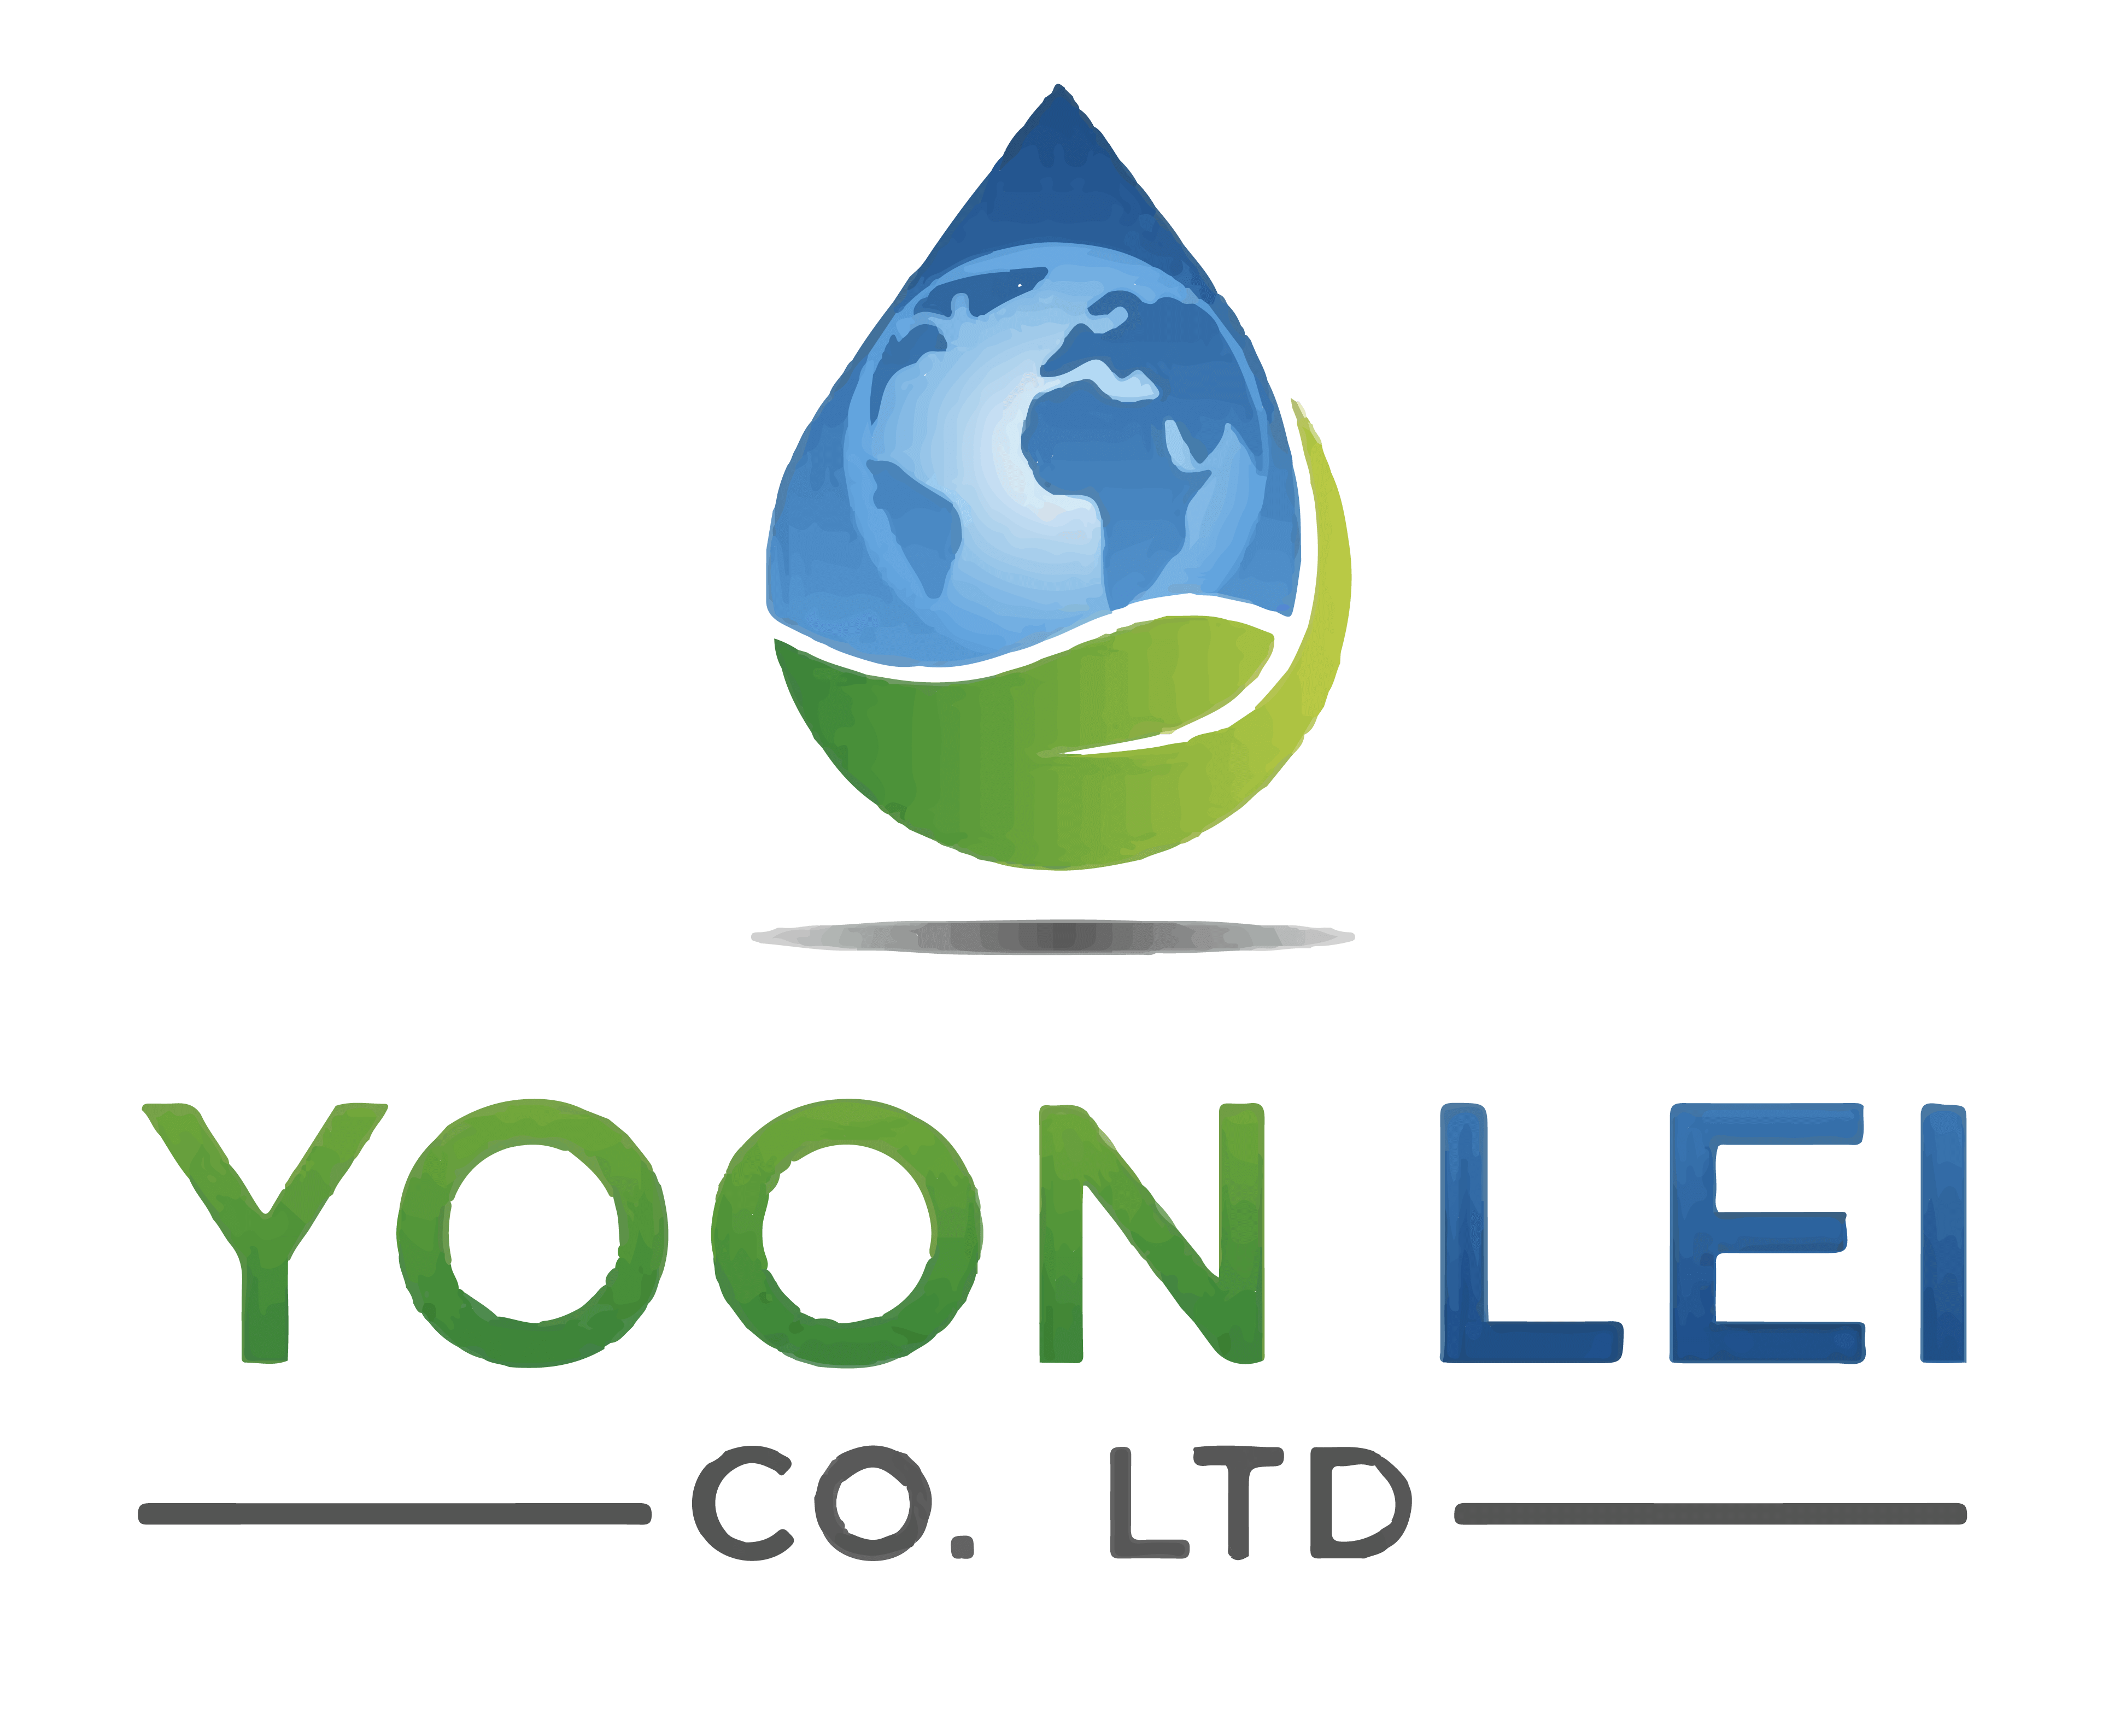 Yoon Lei Co., Ltd.